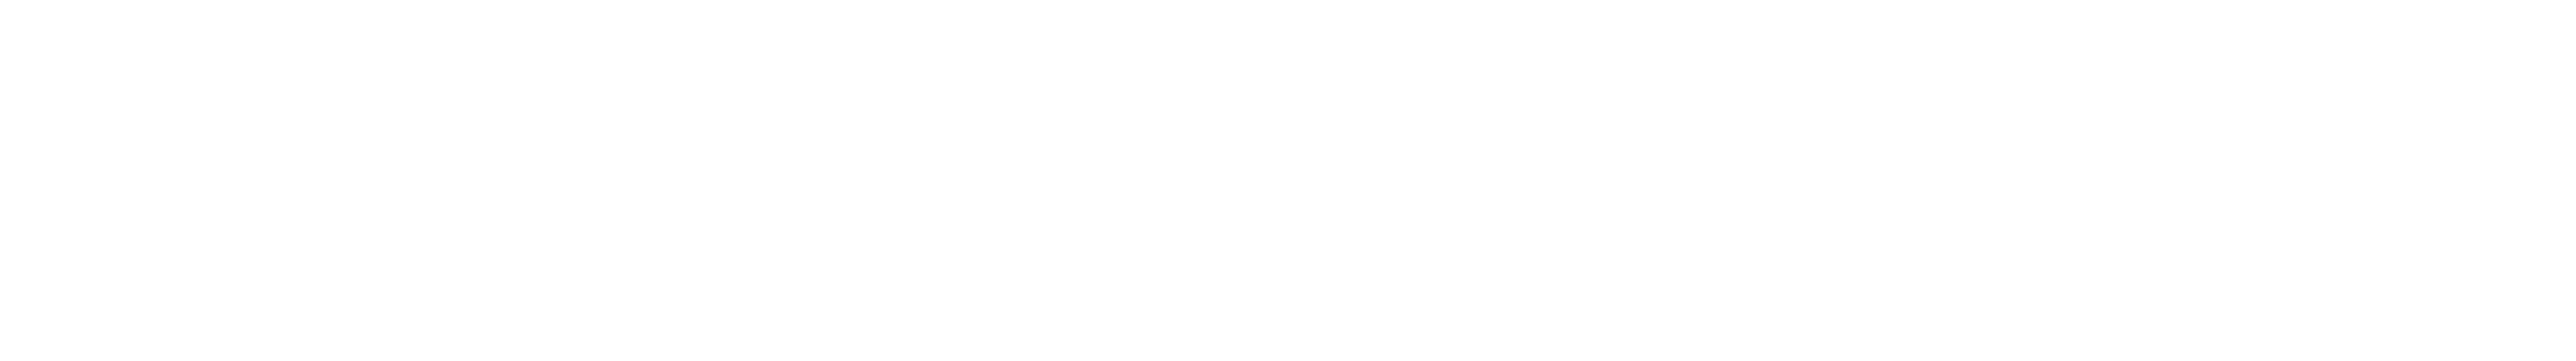 Home Depot Logo Black And White | Insured By RossLogo Home Depot Png